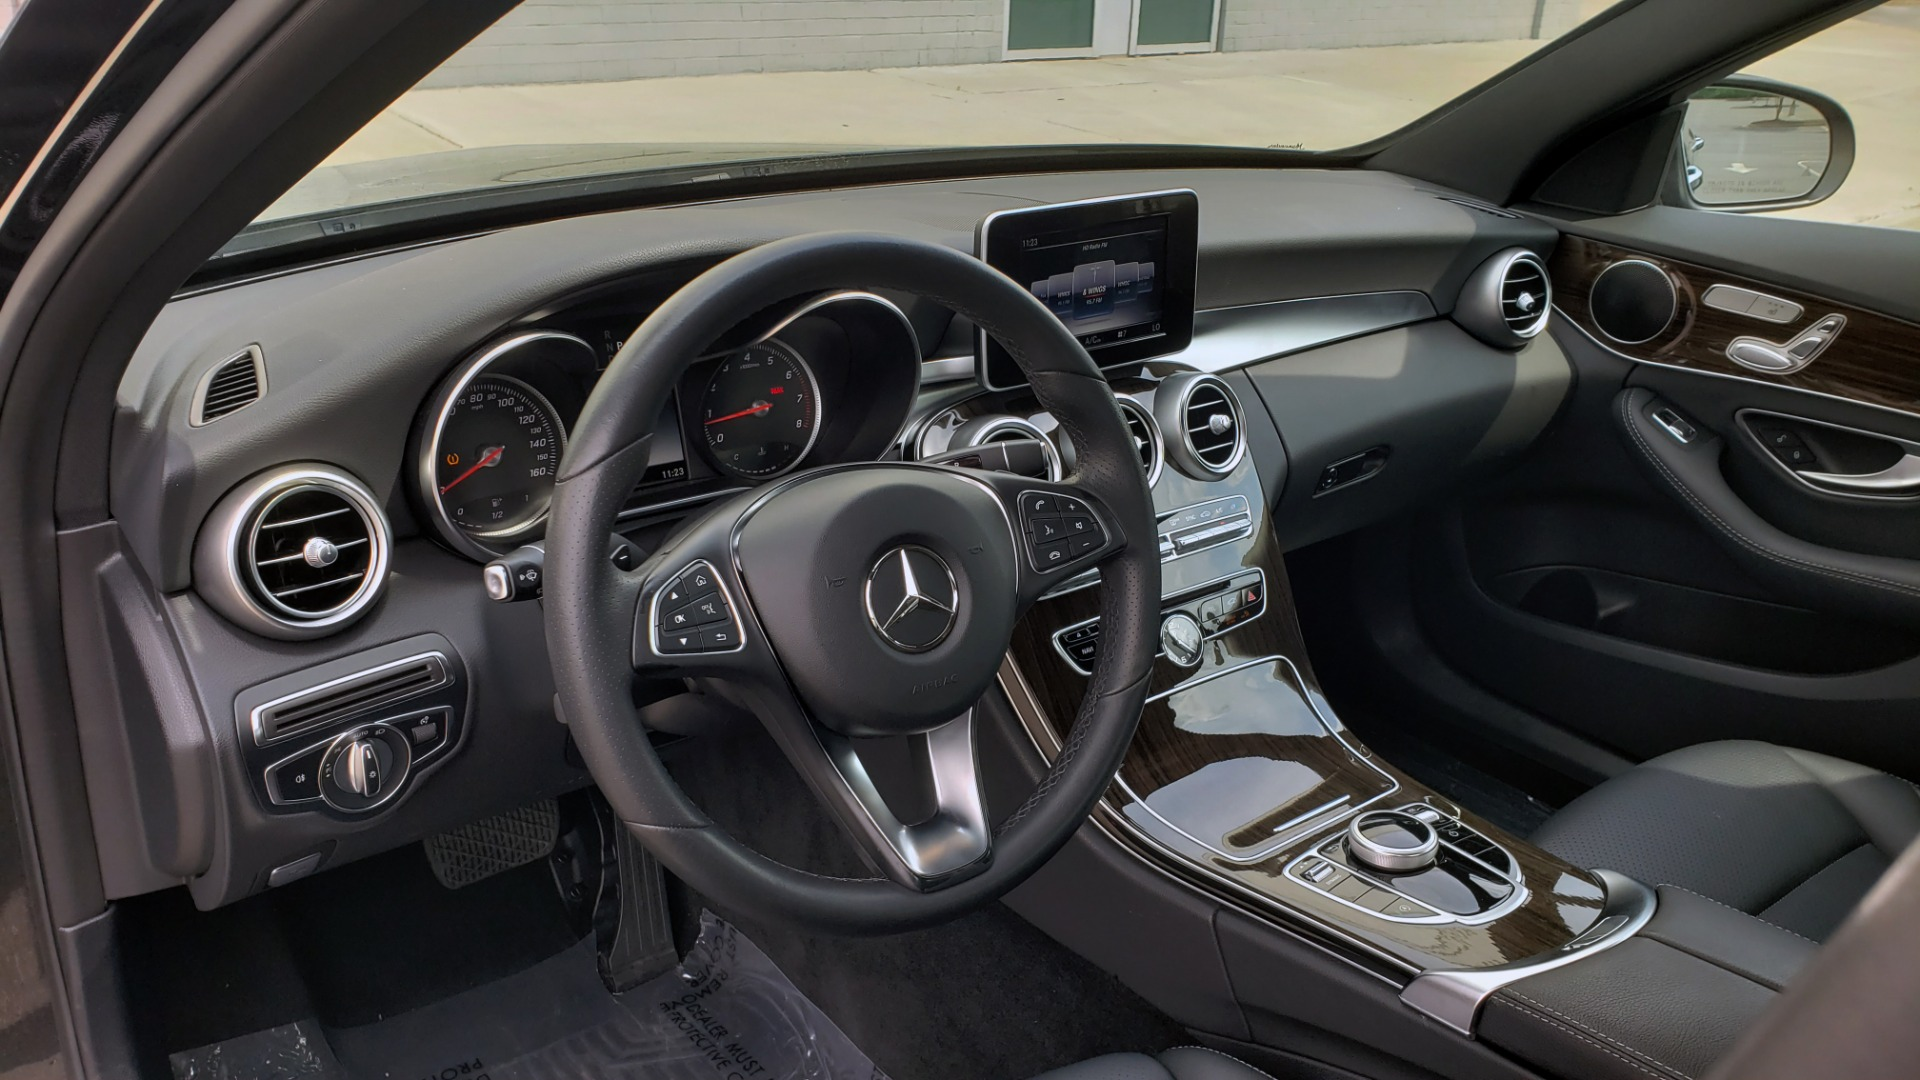 Used 2018 Mercedes-Benz C-CLASS C 300 PREMIUM / HTD STS / APPLE CARPLAY / 18IN WHEELS / REARVIEW for sale $24,795 at Formula Imports in Charlotte NC 28227 37